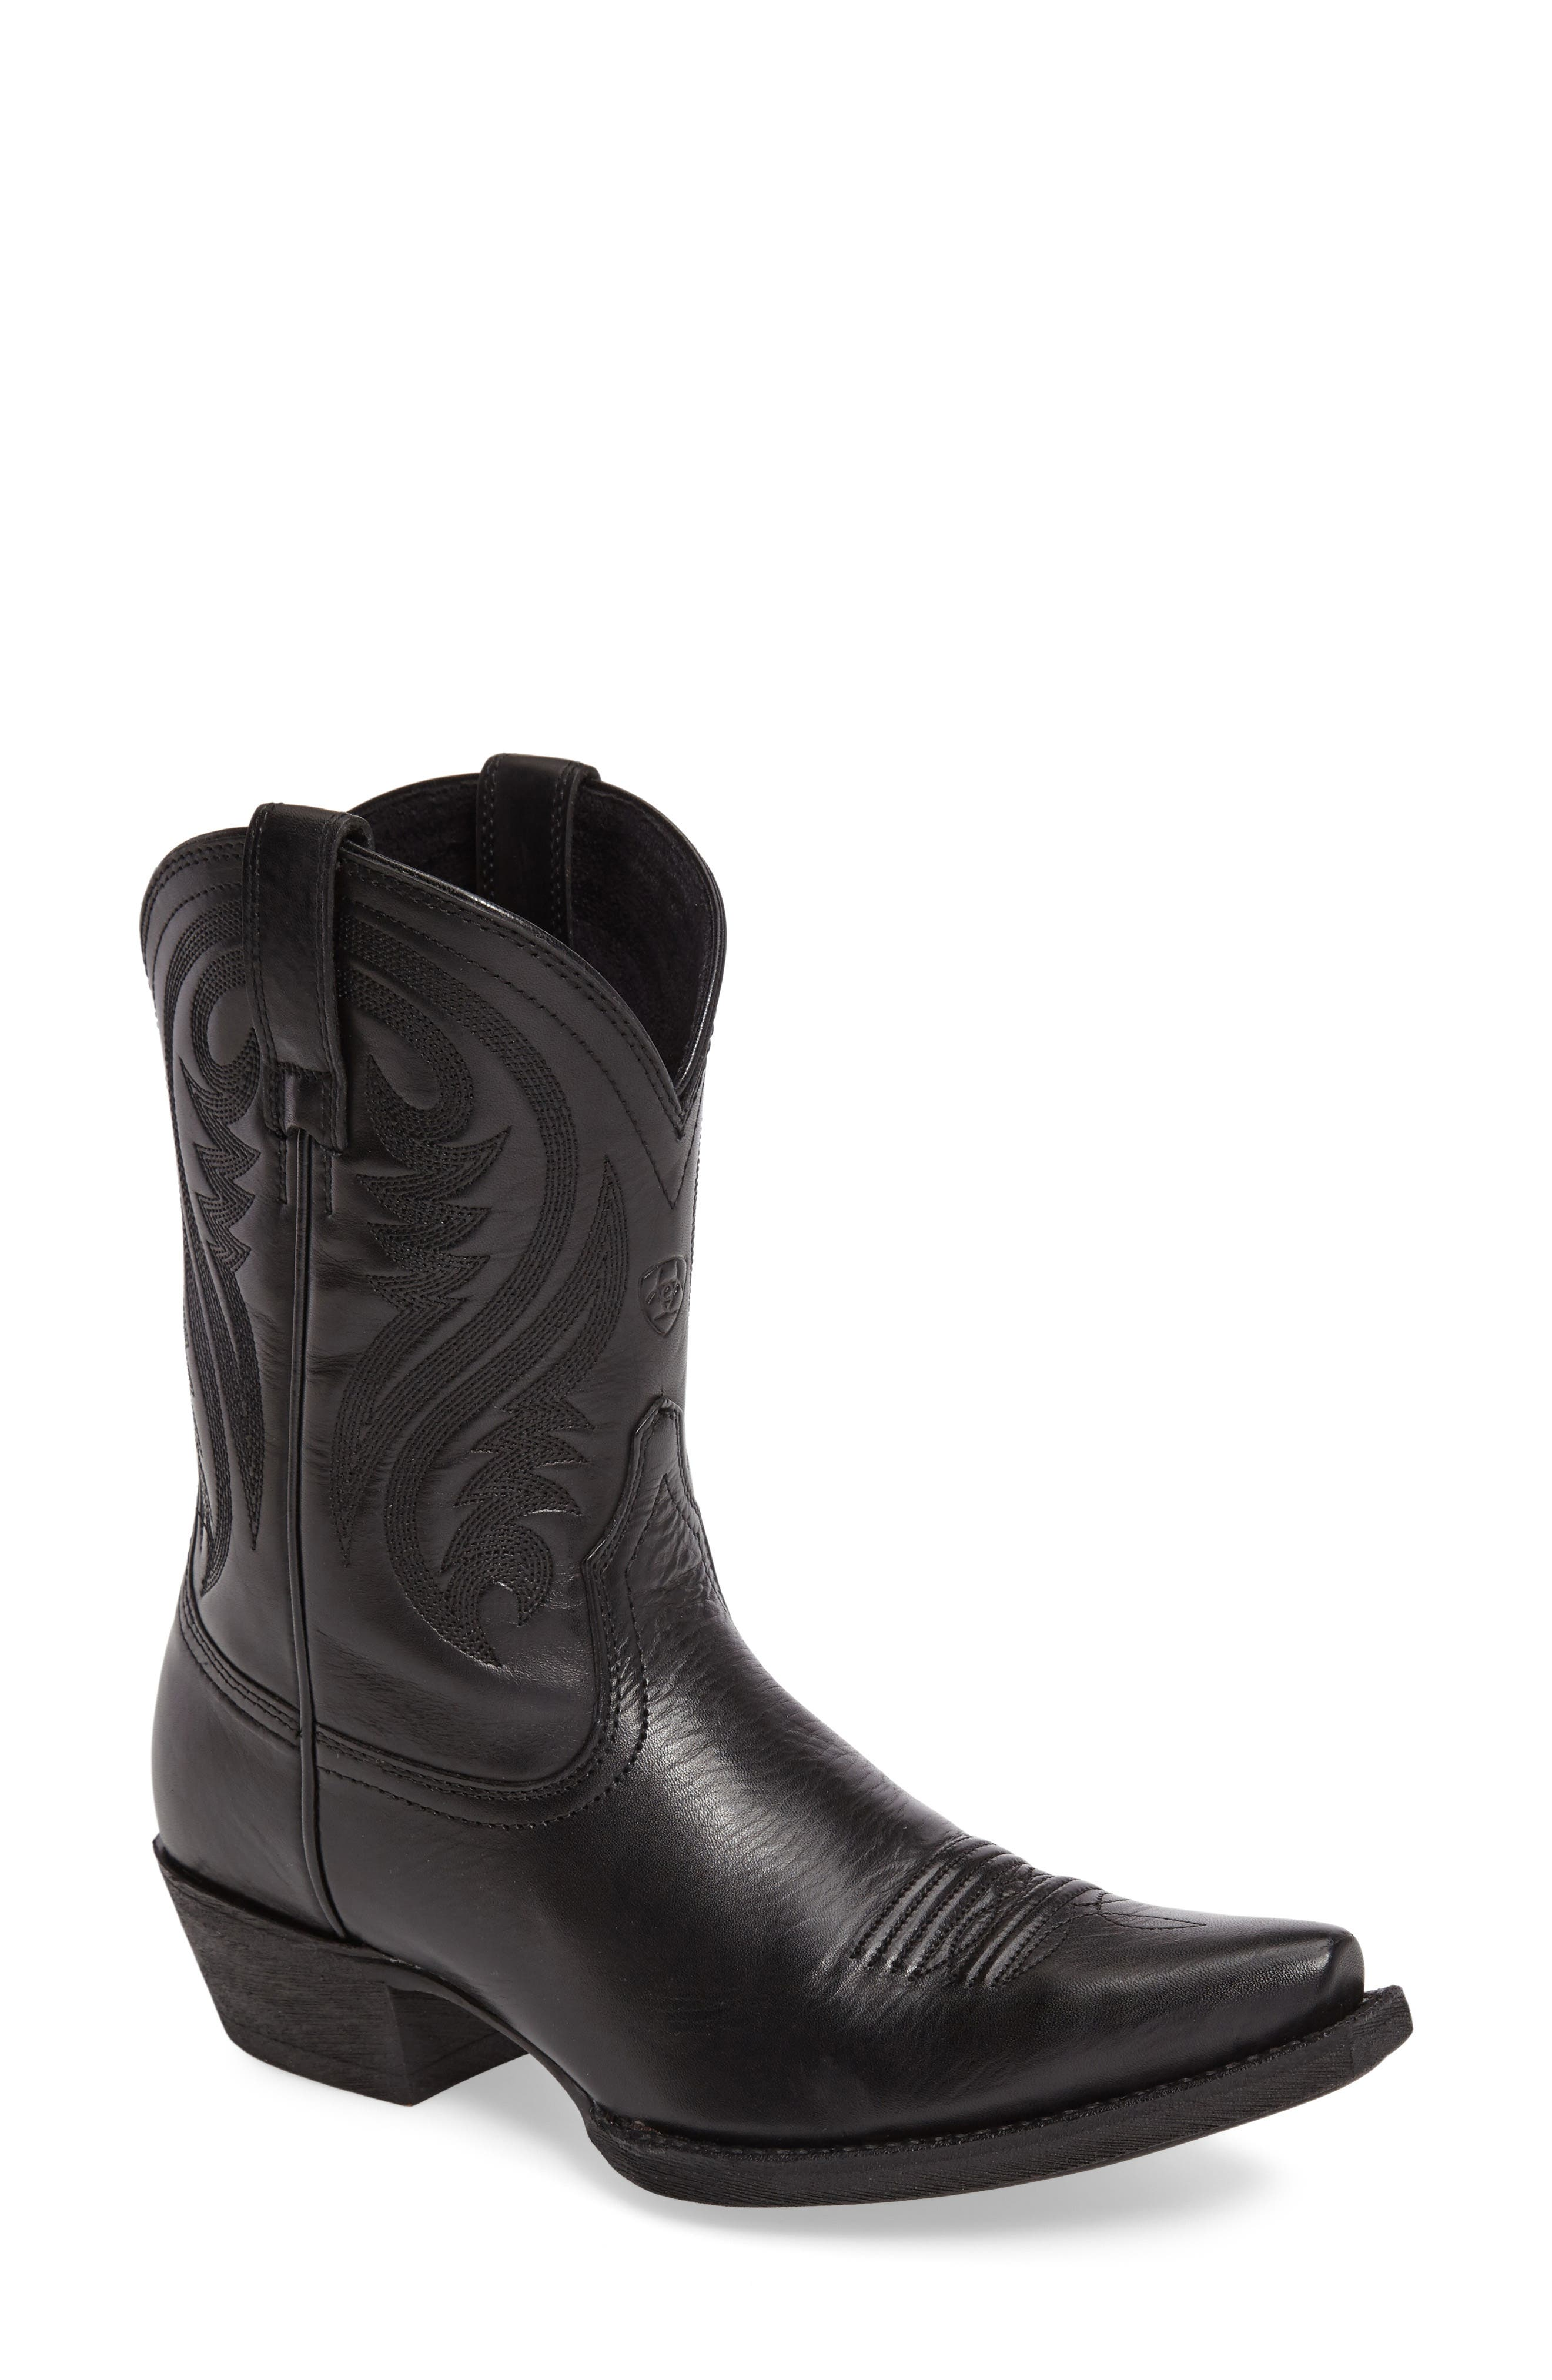 Alternate Image 1 Selected - Ariat Willow Western Boot (Women)